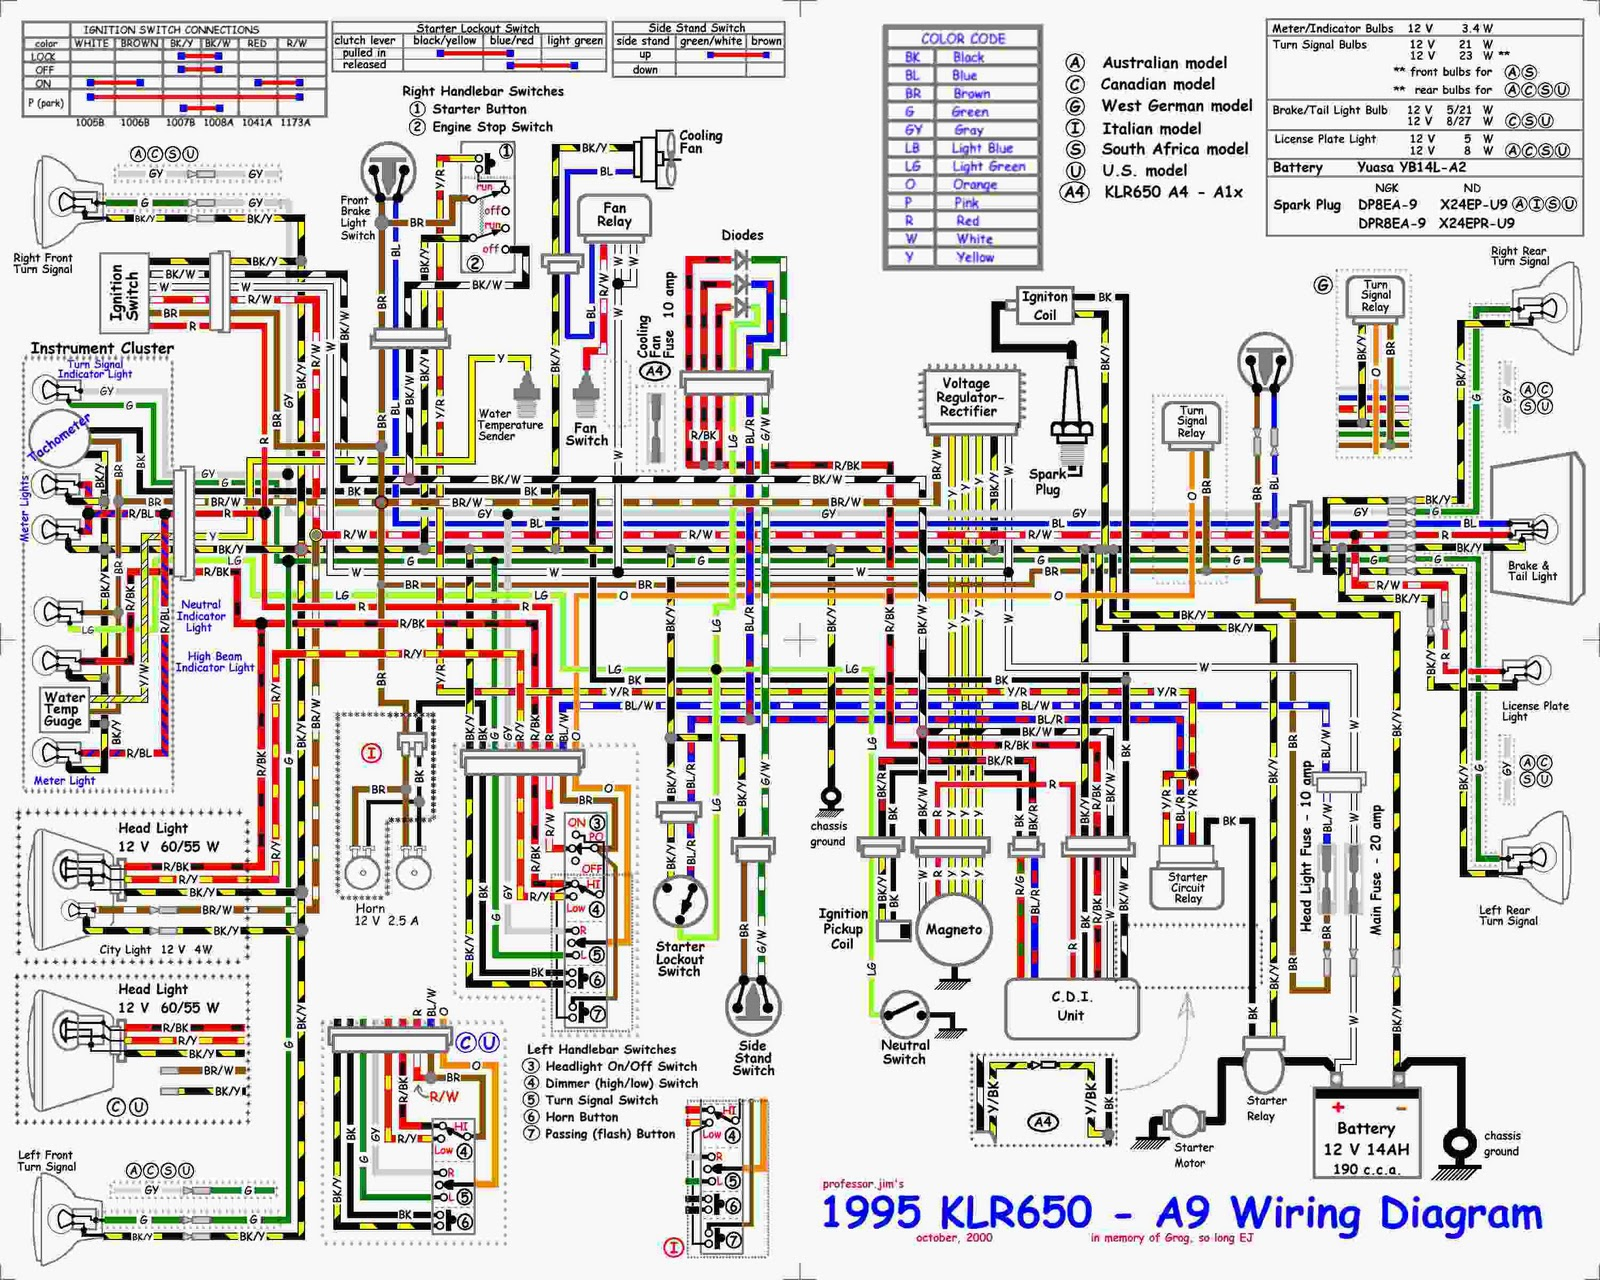 1995 Kawasaki KLR650 Wiring Diagram | All about Wiring